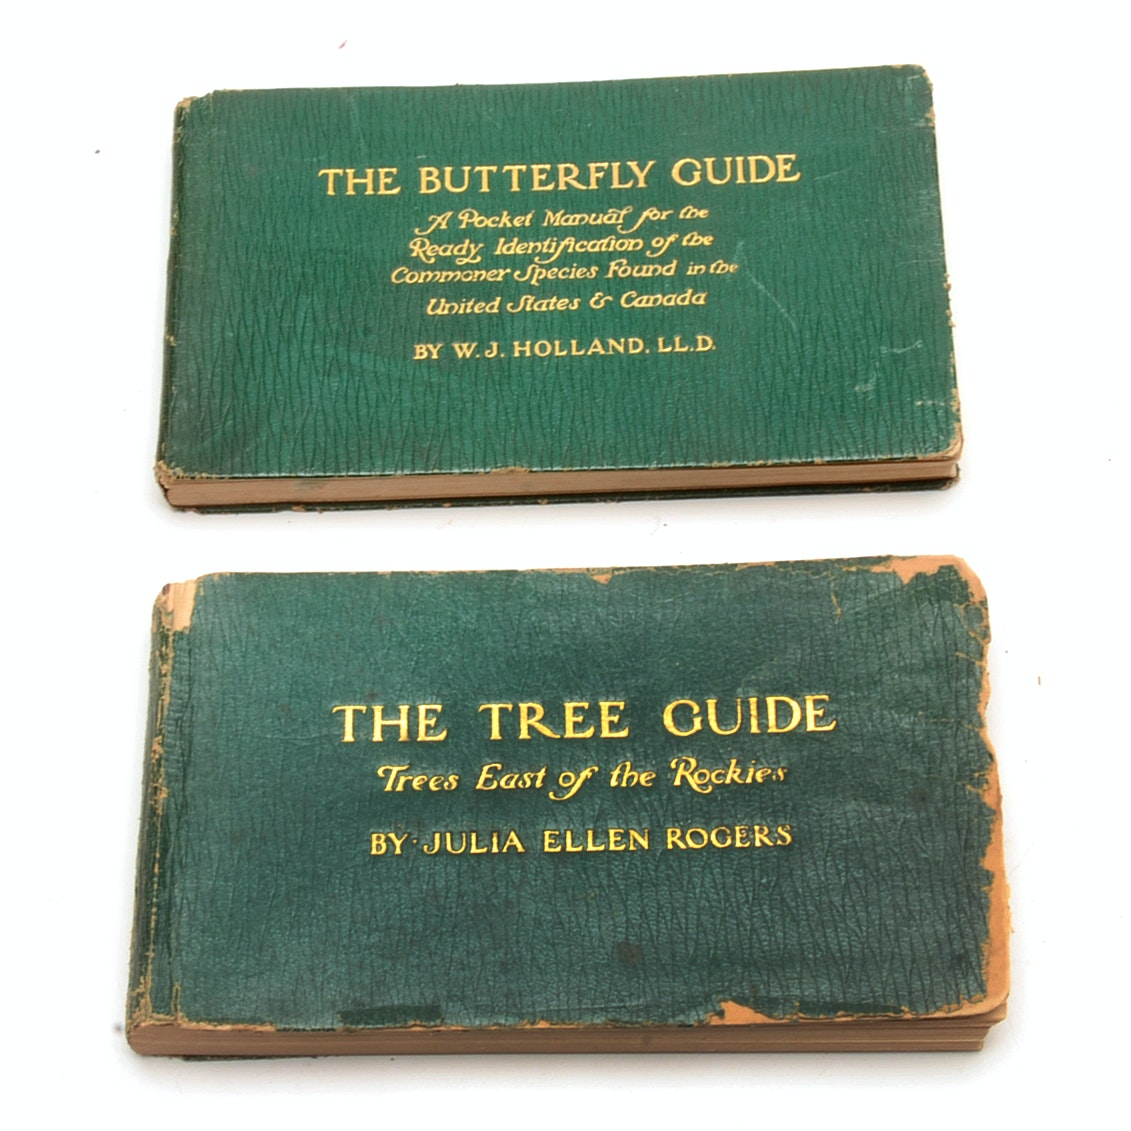 Leather Bond Soft Cover Guide Books About Trees and Butterflies